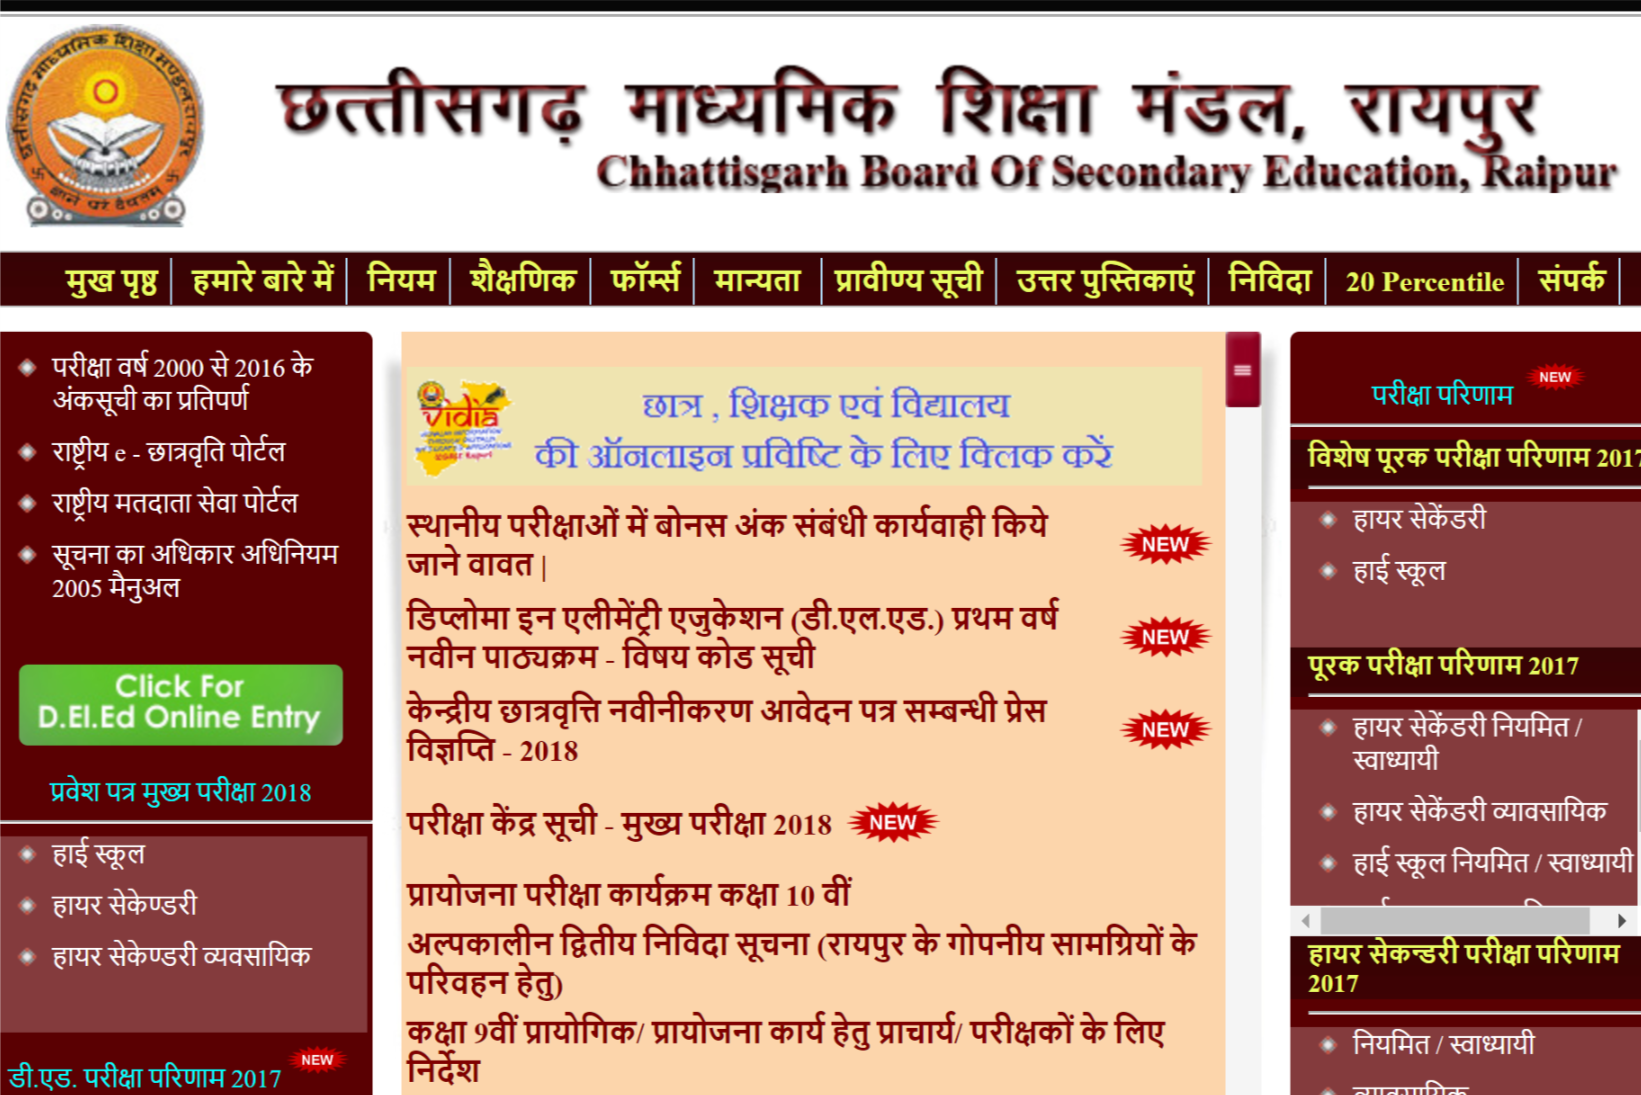 CGBSE 2018: CG Board 12th Result 2018 declared, check cgbse.net, cgbse